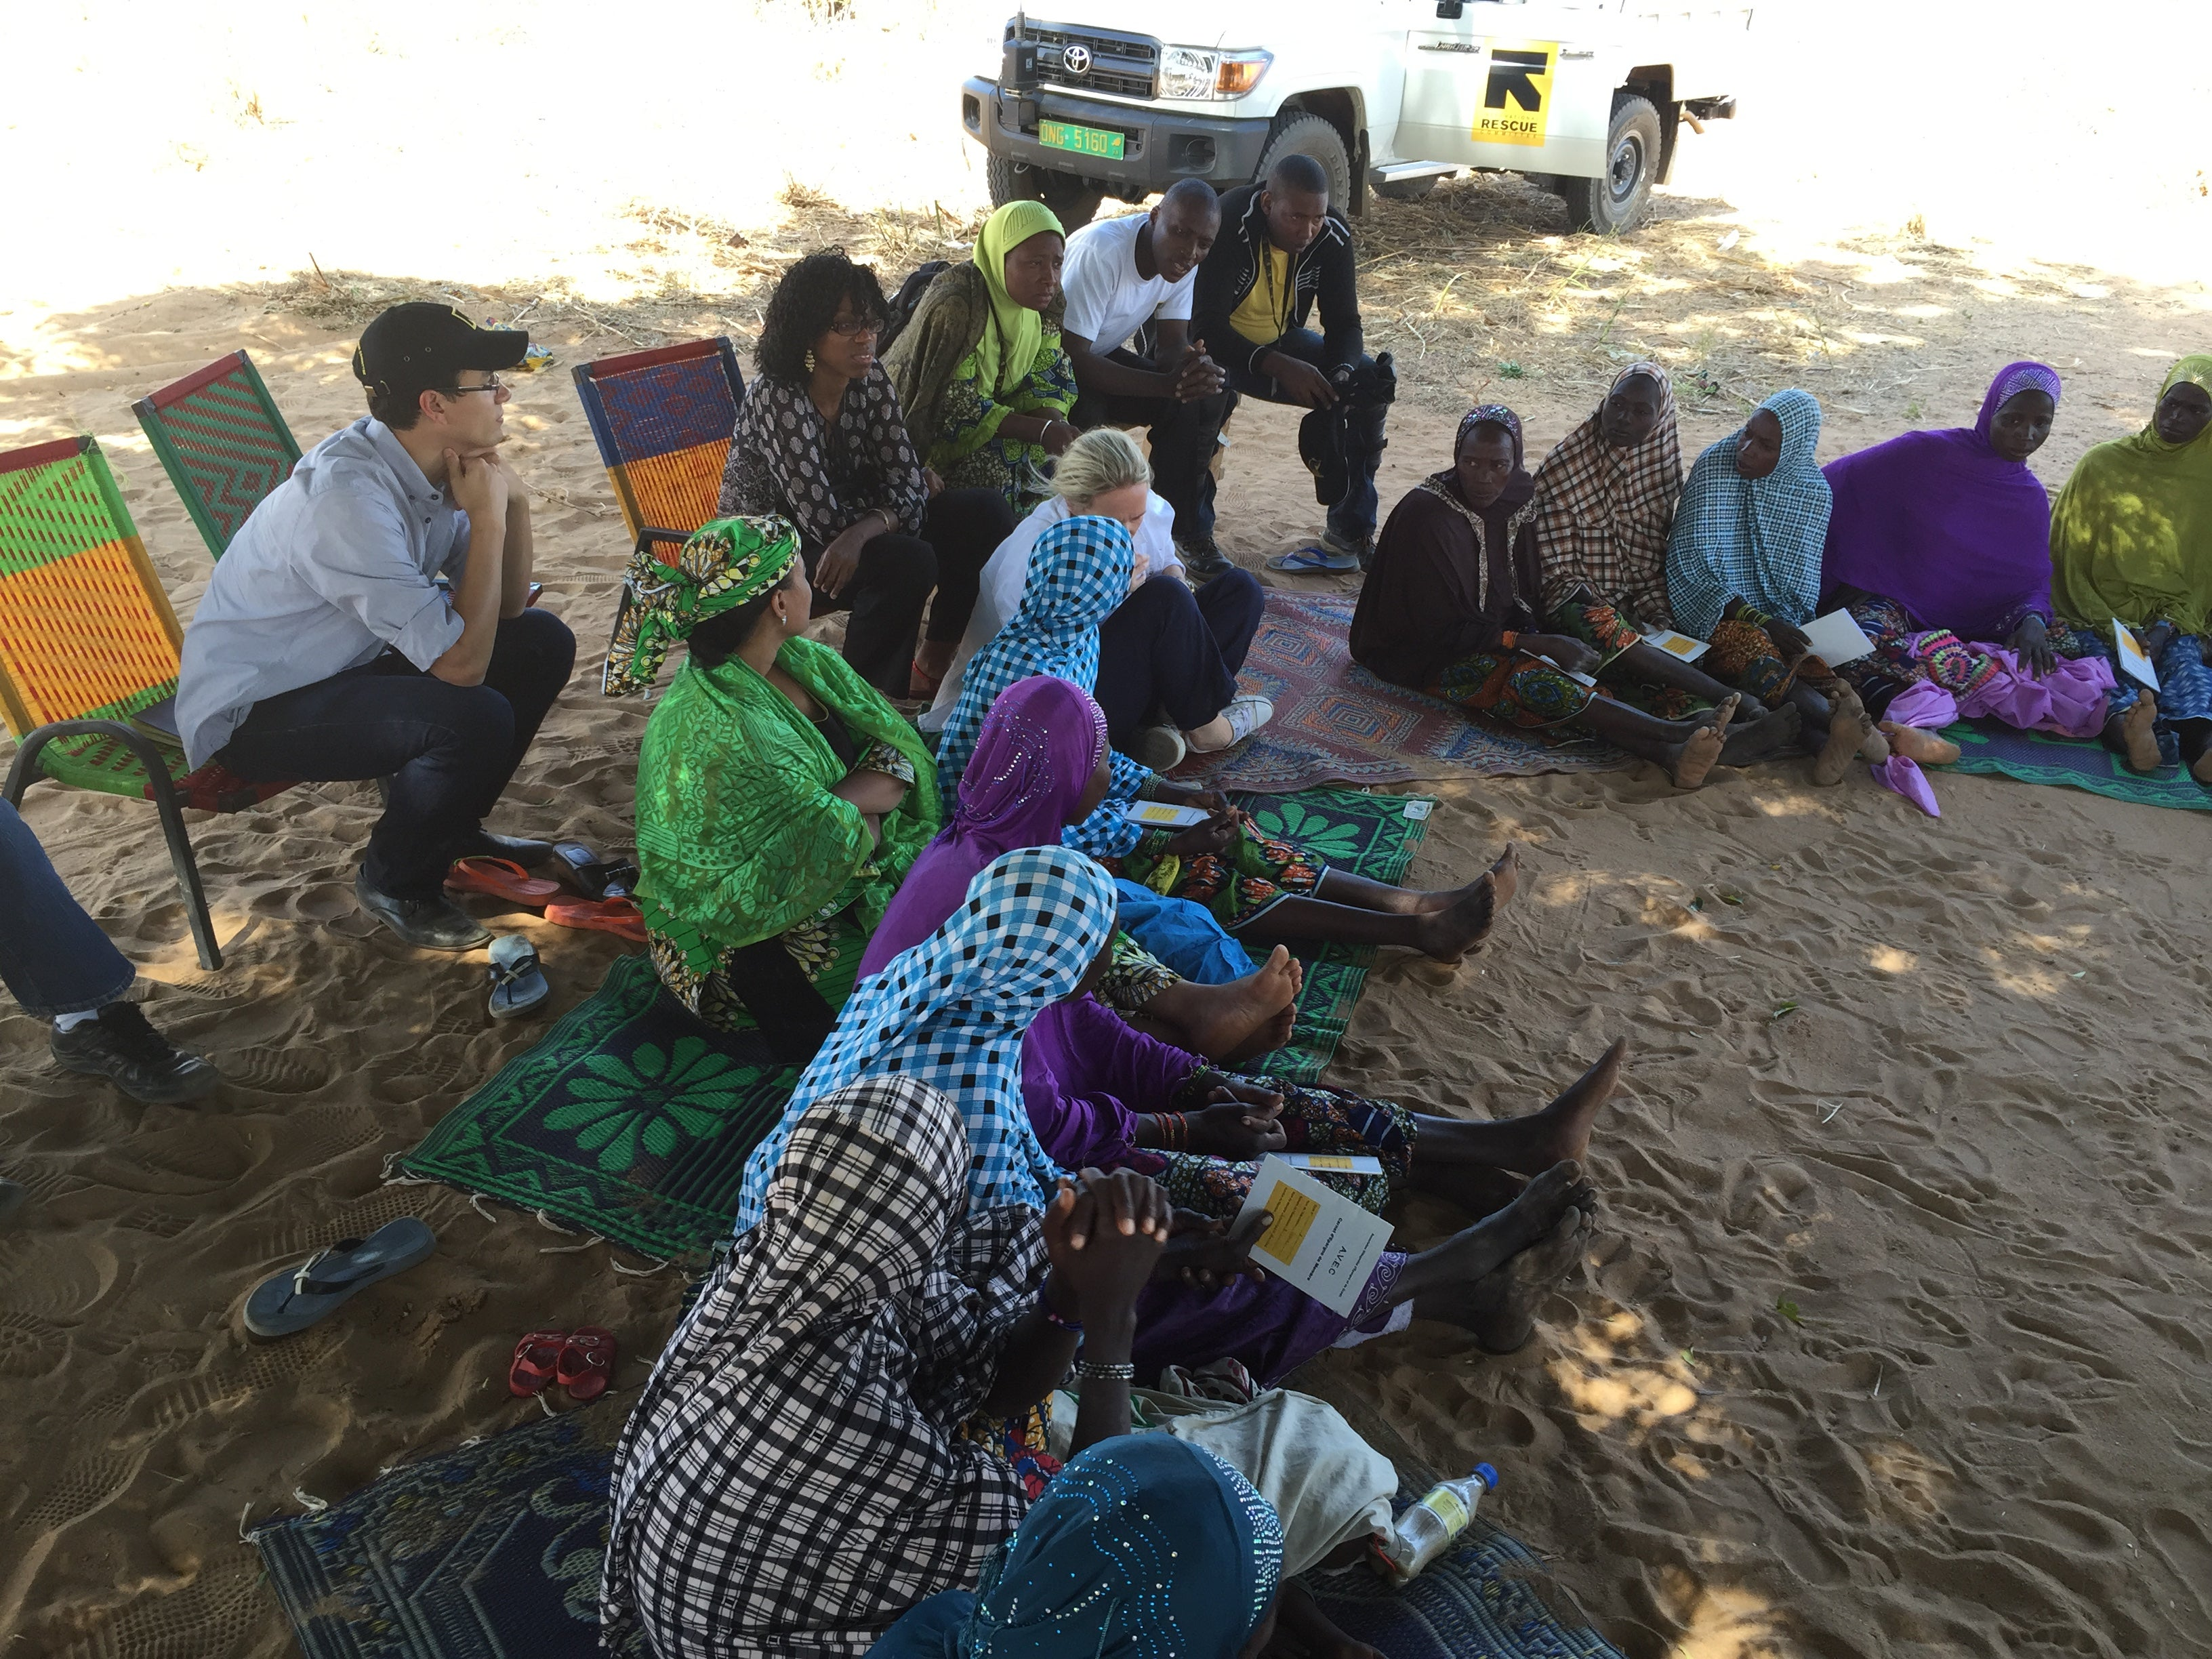 Ben Wise in a high poverty area of Niger attending a women's microfinance group's weekly deposit meeting organized by IRC